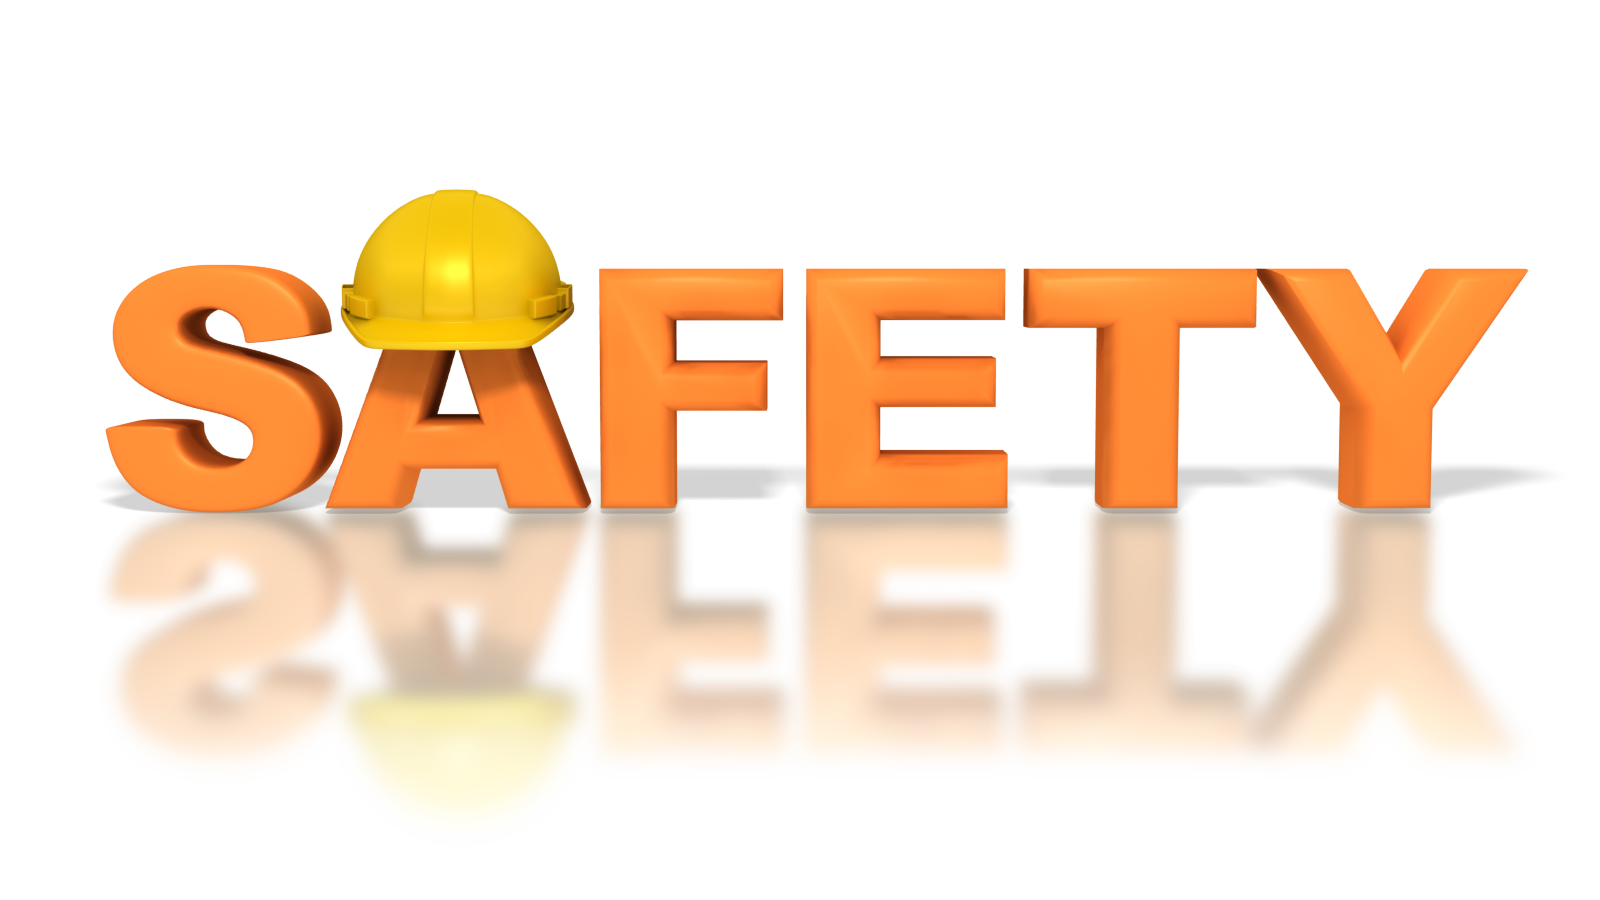 Workplace Safety! - Workplace Safety PNG HD